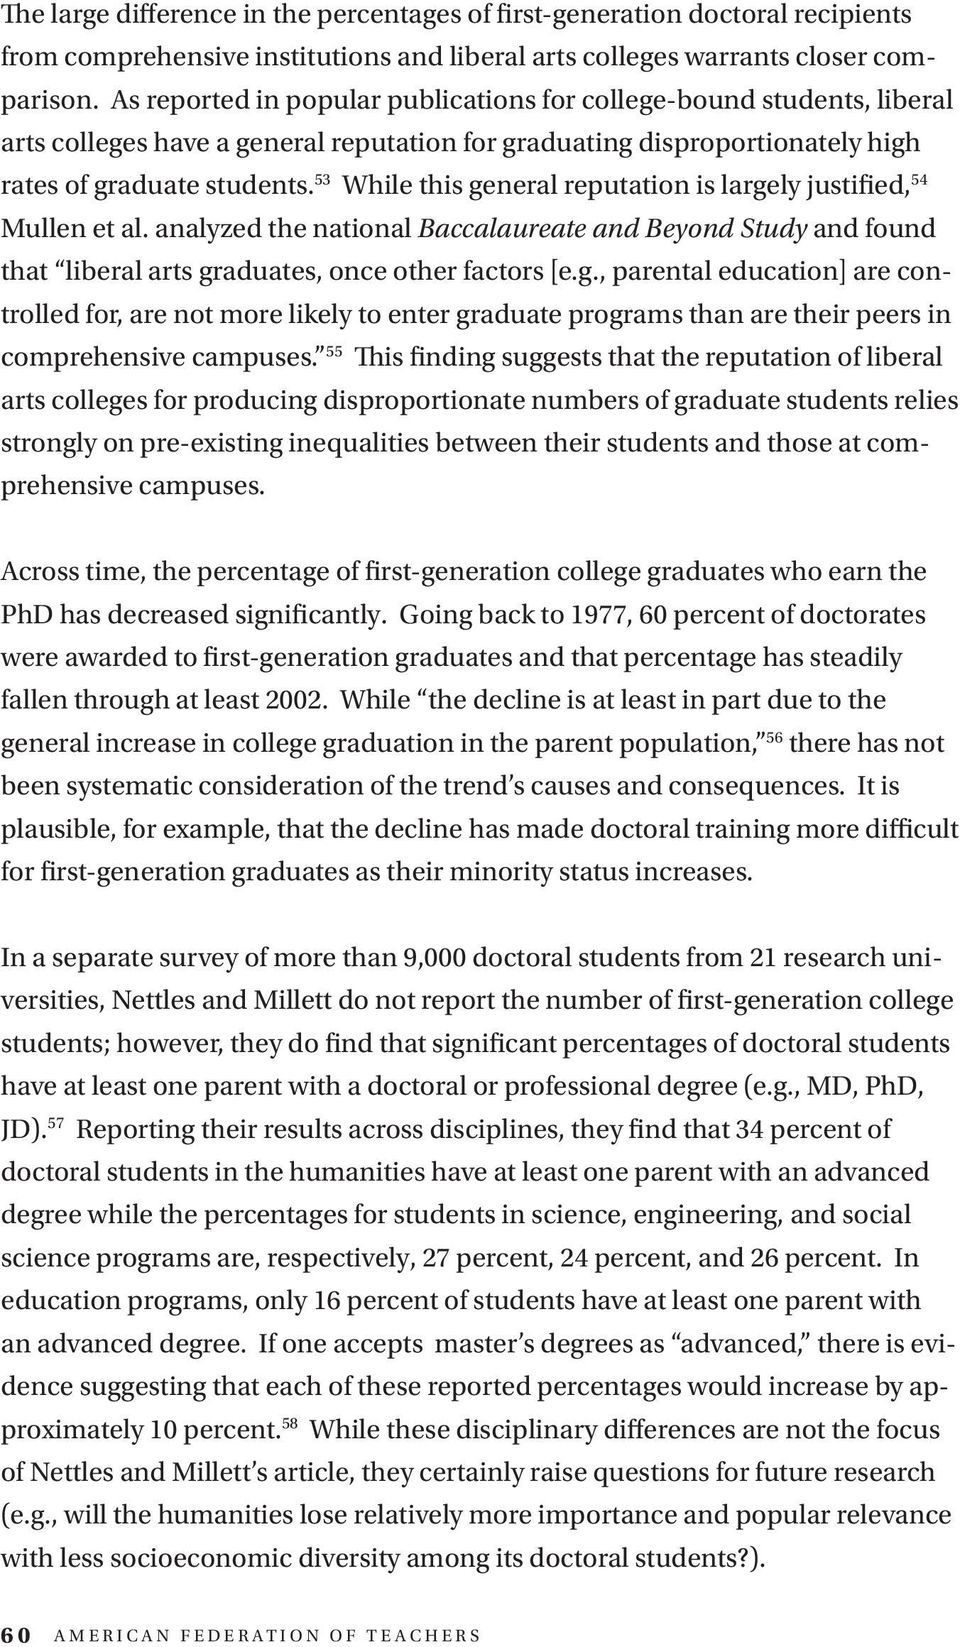 53 While this general reputation is largely justified, 54 Mullen et al. analyzed the national Baccalaureate and Beyond Study and found that liberal arts graduates, once other factors [e.g., parental education] are controlled for, are not more likely to enter graduate programs than are their peers in comprehensive campuses.